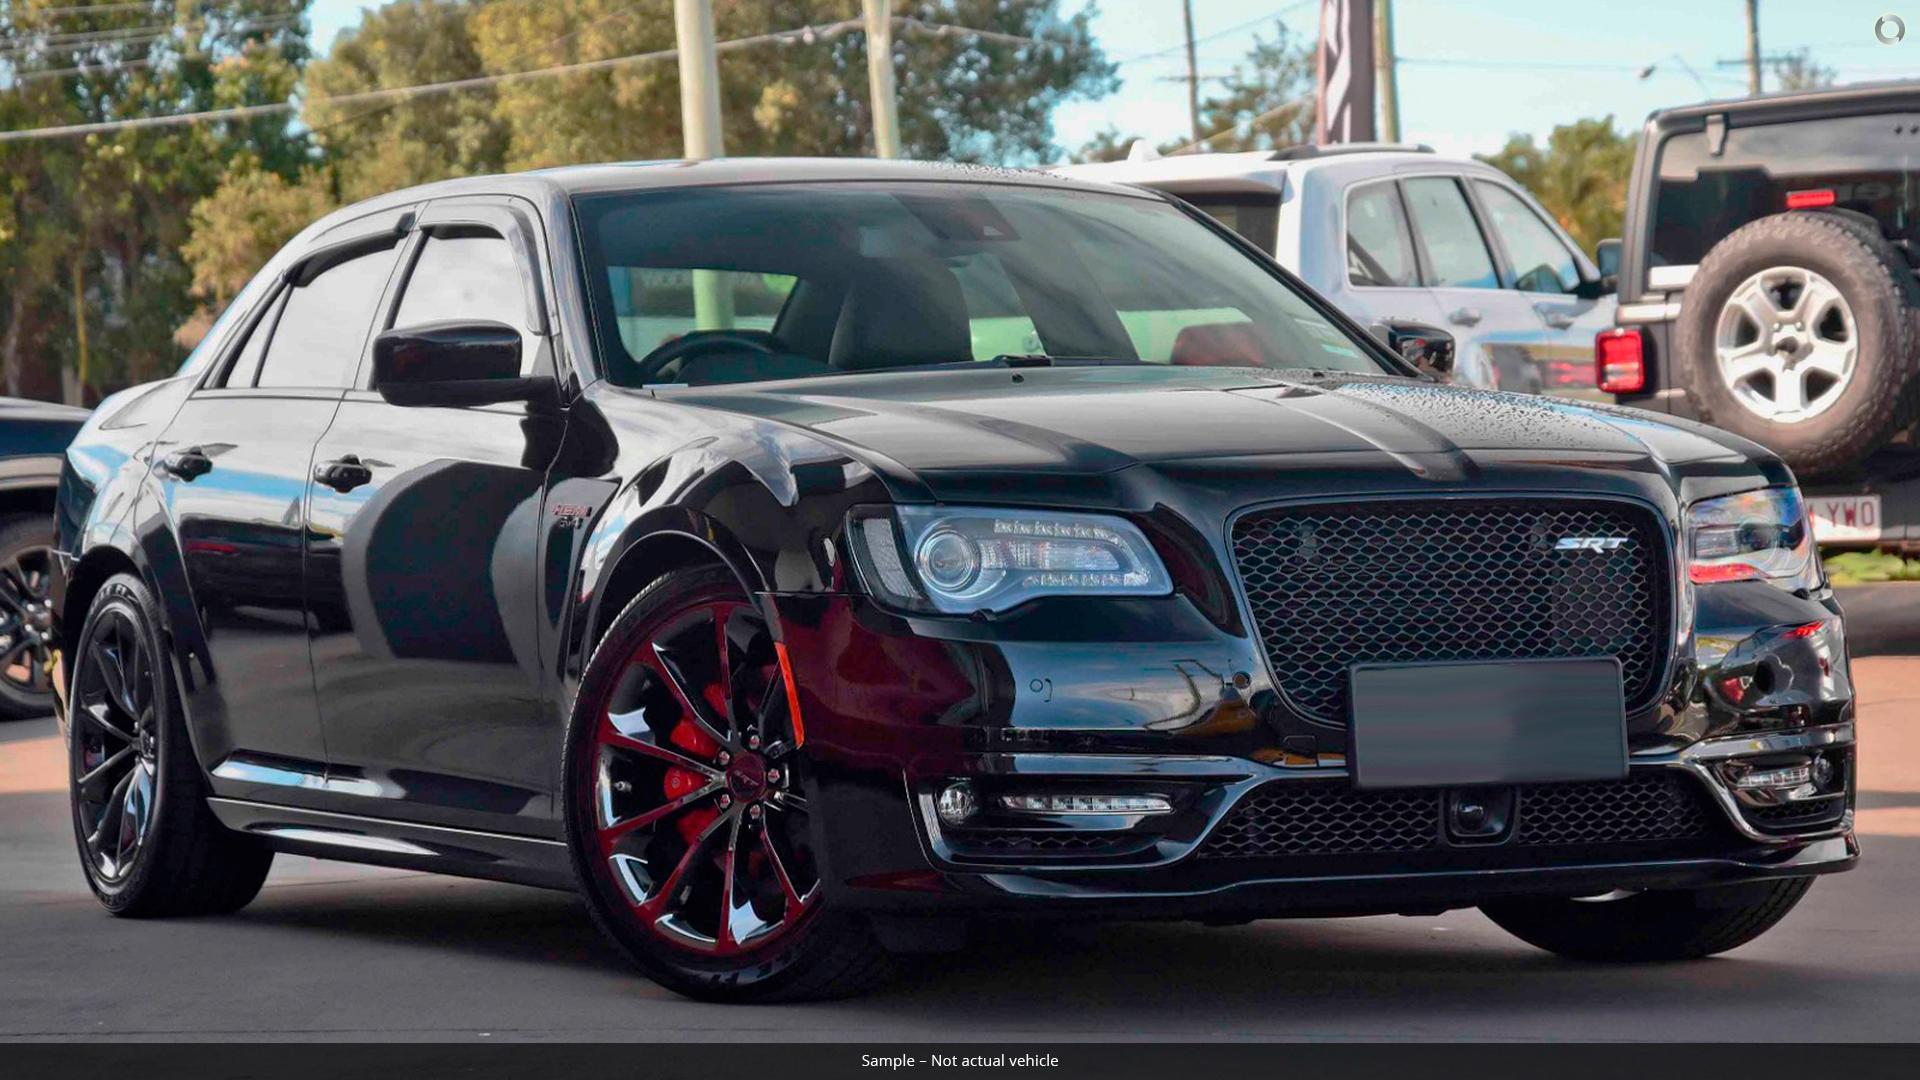 2019 Chrysler 300 SRT LX